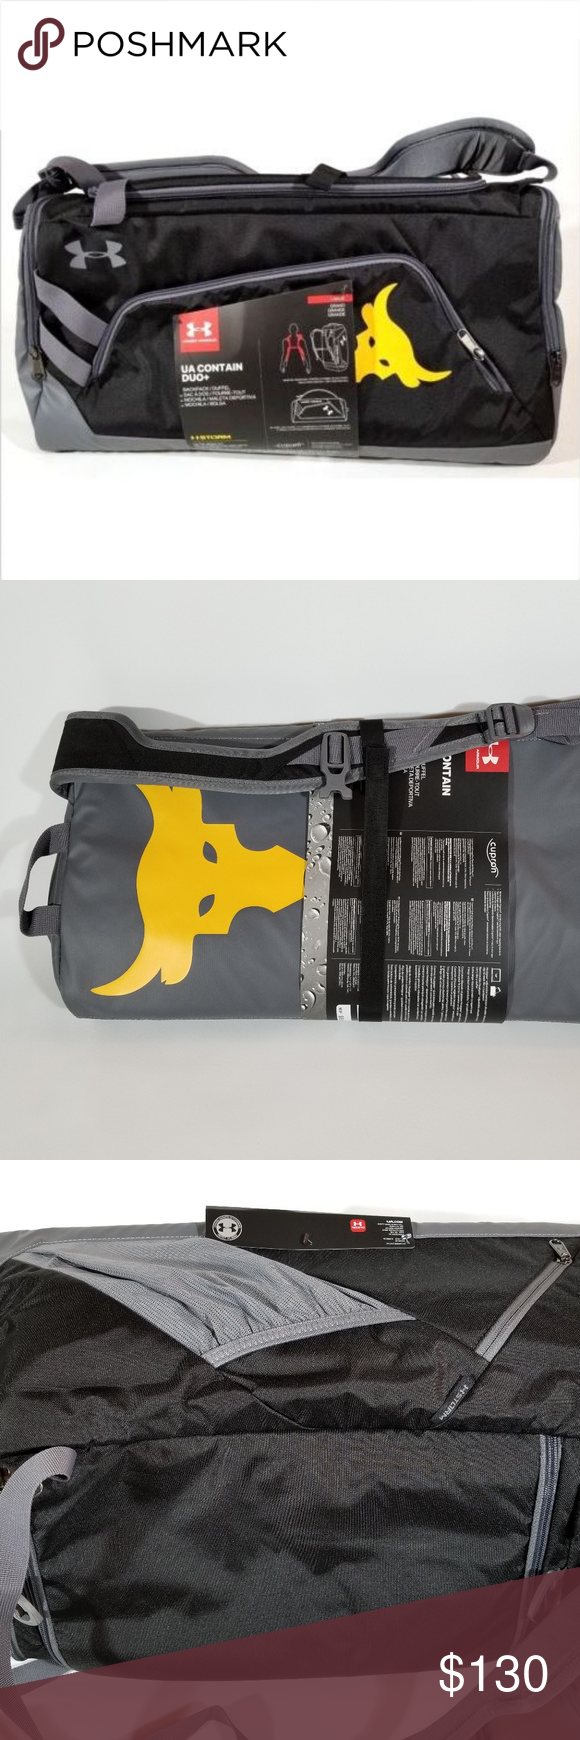 1efd8574b9 Under Armour X Project Rock Contain Duo Duffle Bag Brand New Under Armour X Project  Rock UA Contain Duo+ Backpack / Duffle Bag Style: 1304575-001 Color: ...